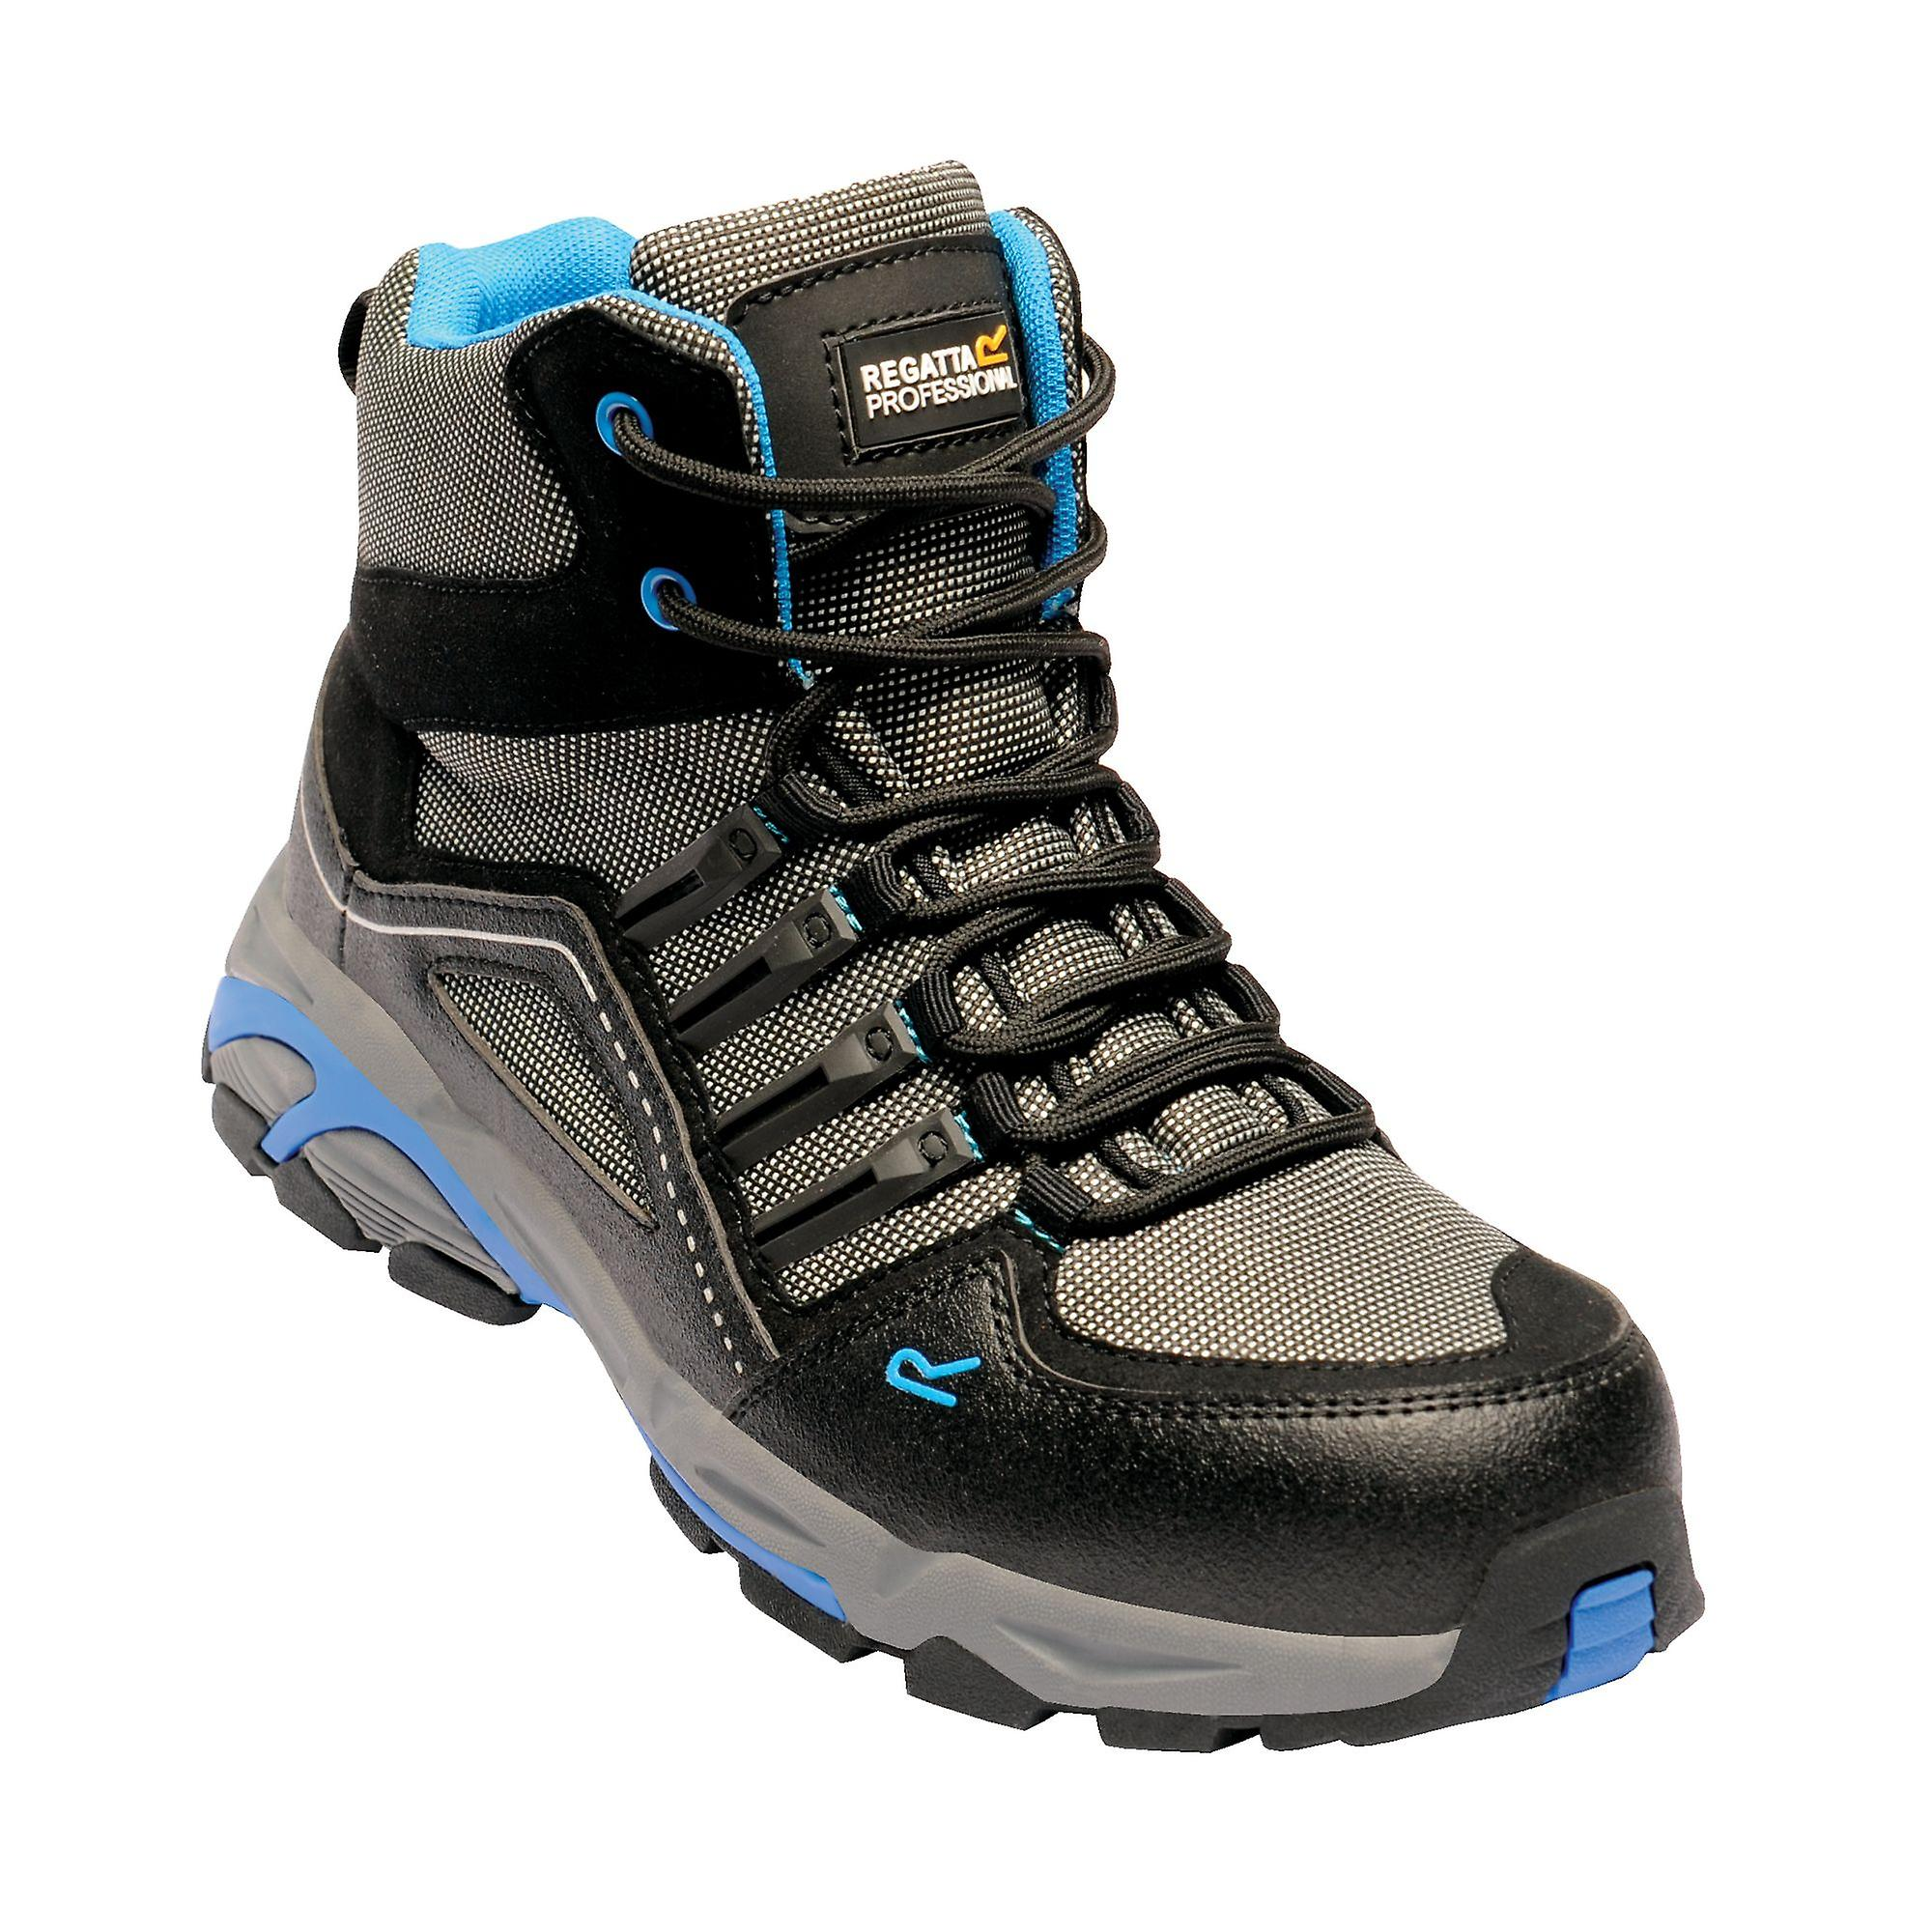 Regatta Unisex Convex Safety Trainer Steel Toe Capped Boots